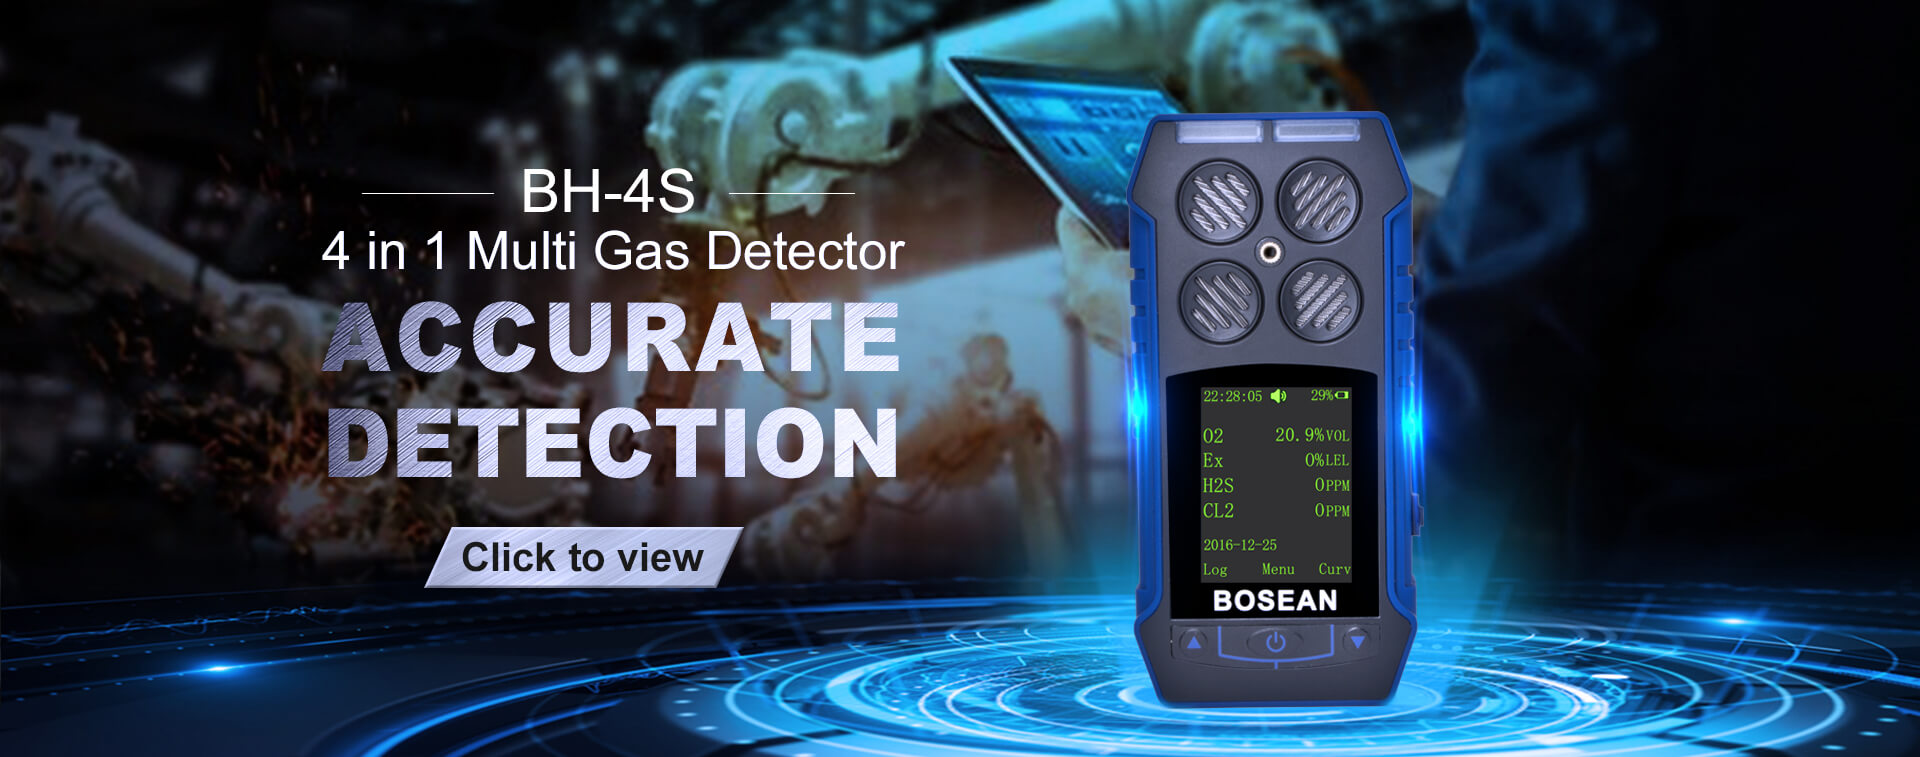 BH-4S portable multi gas detector